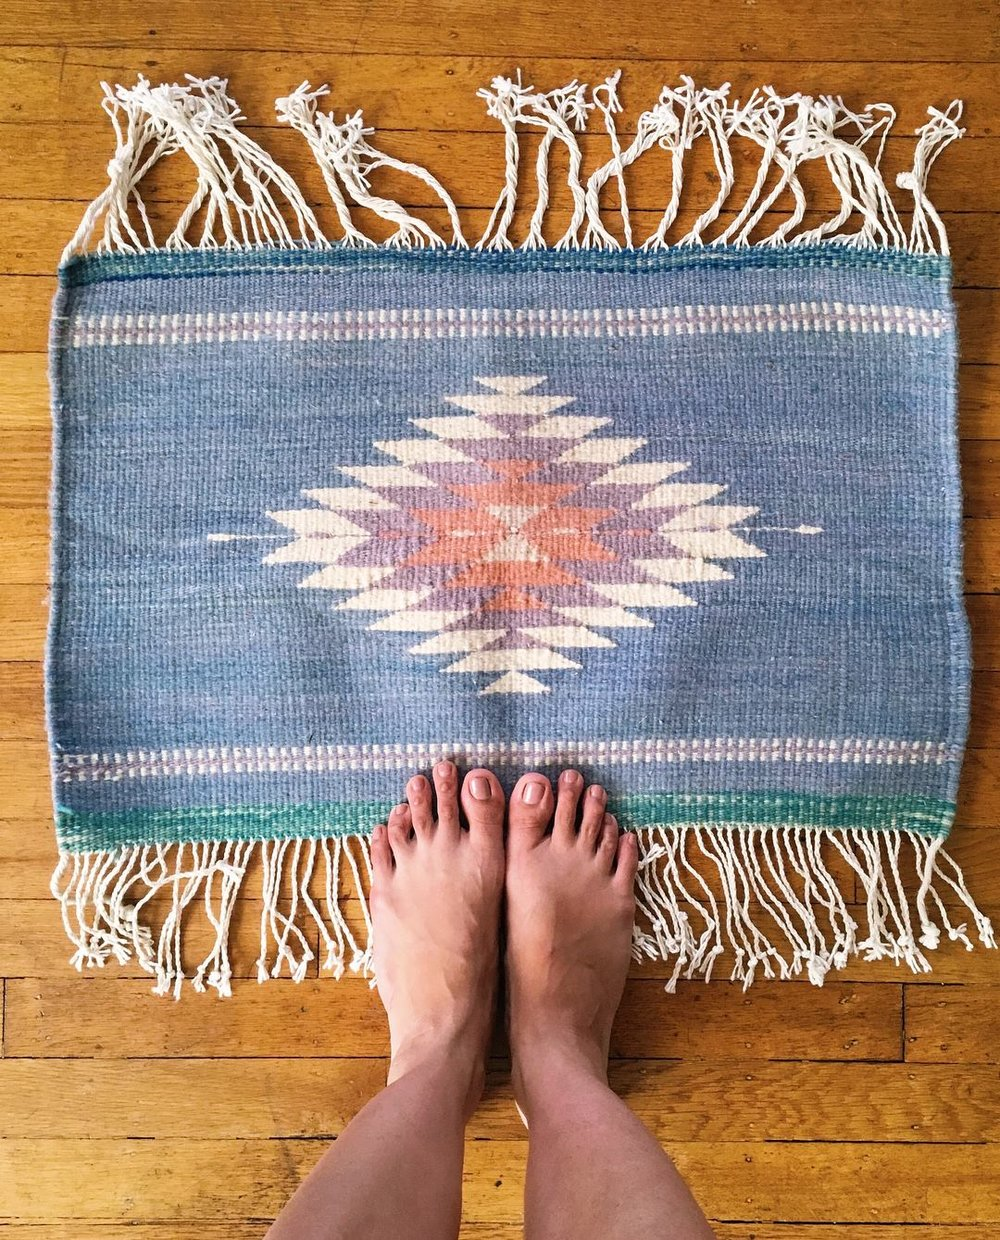 Hand woven rug I made under the instruction of a Zapotec weaver in Teotihuacan, Mexico.